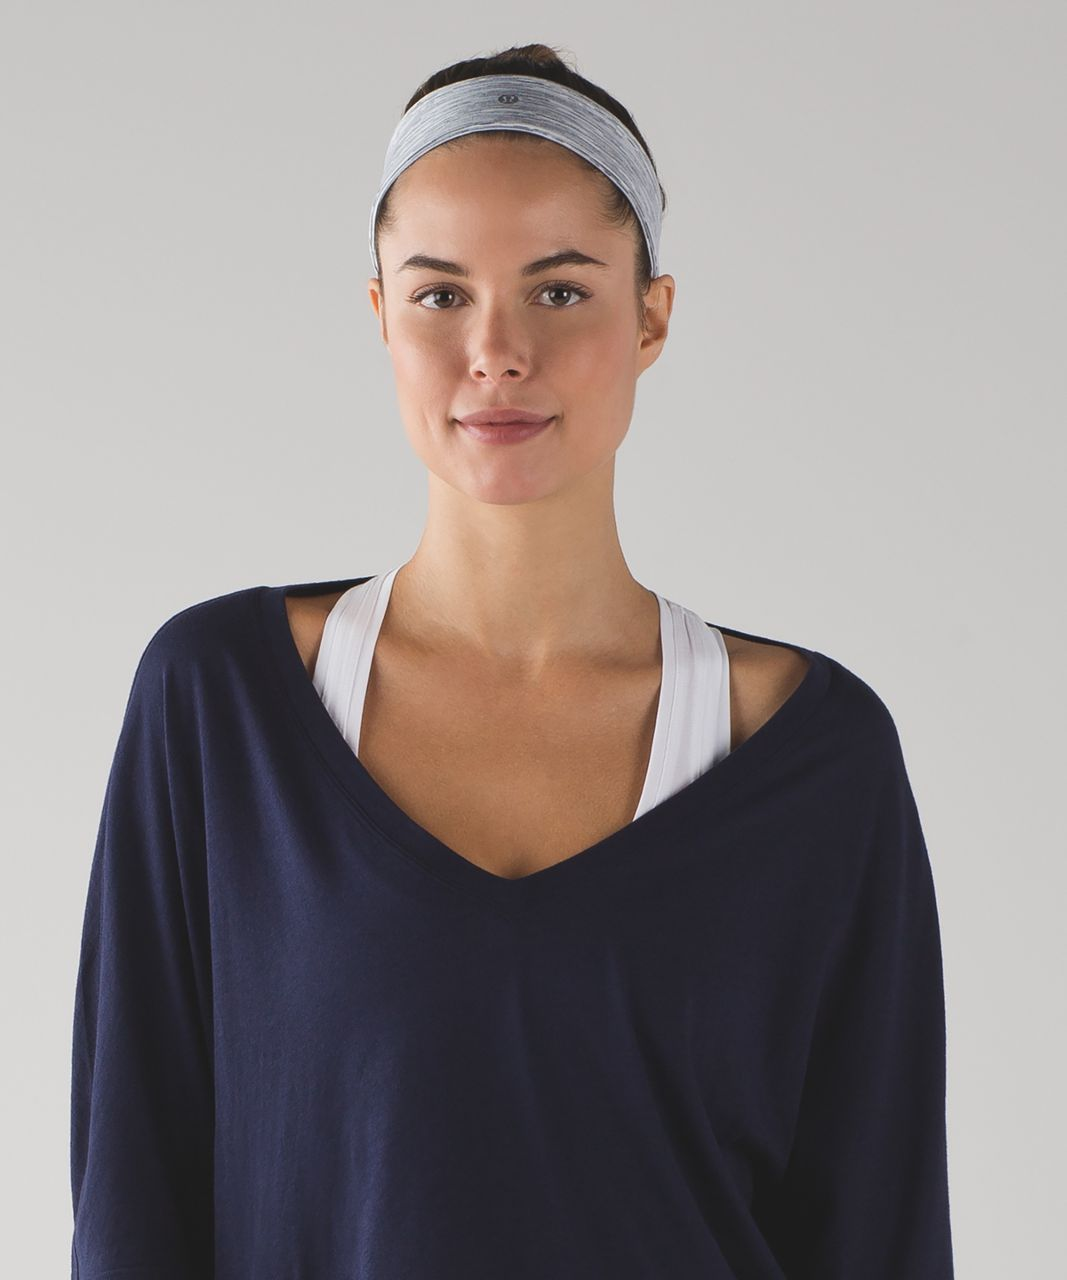 Lululemon Fly Away Tamer Headband II - Wee Are From Space Ice Grey Alpine White